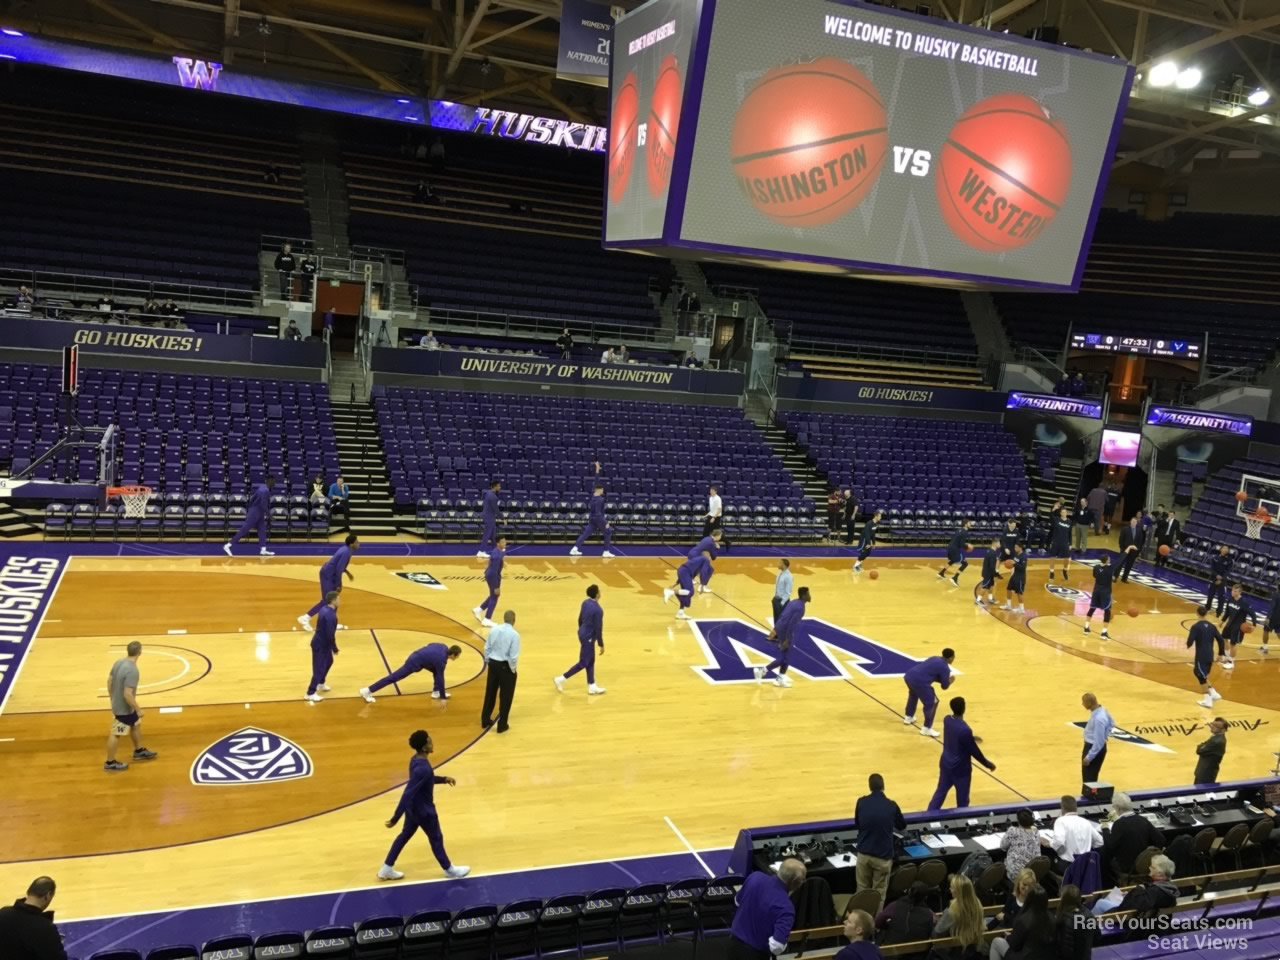 Seat View for Alaska Airlines Arena Section 2, Row 10